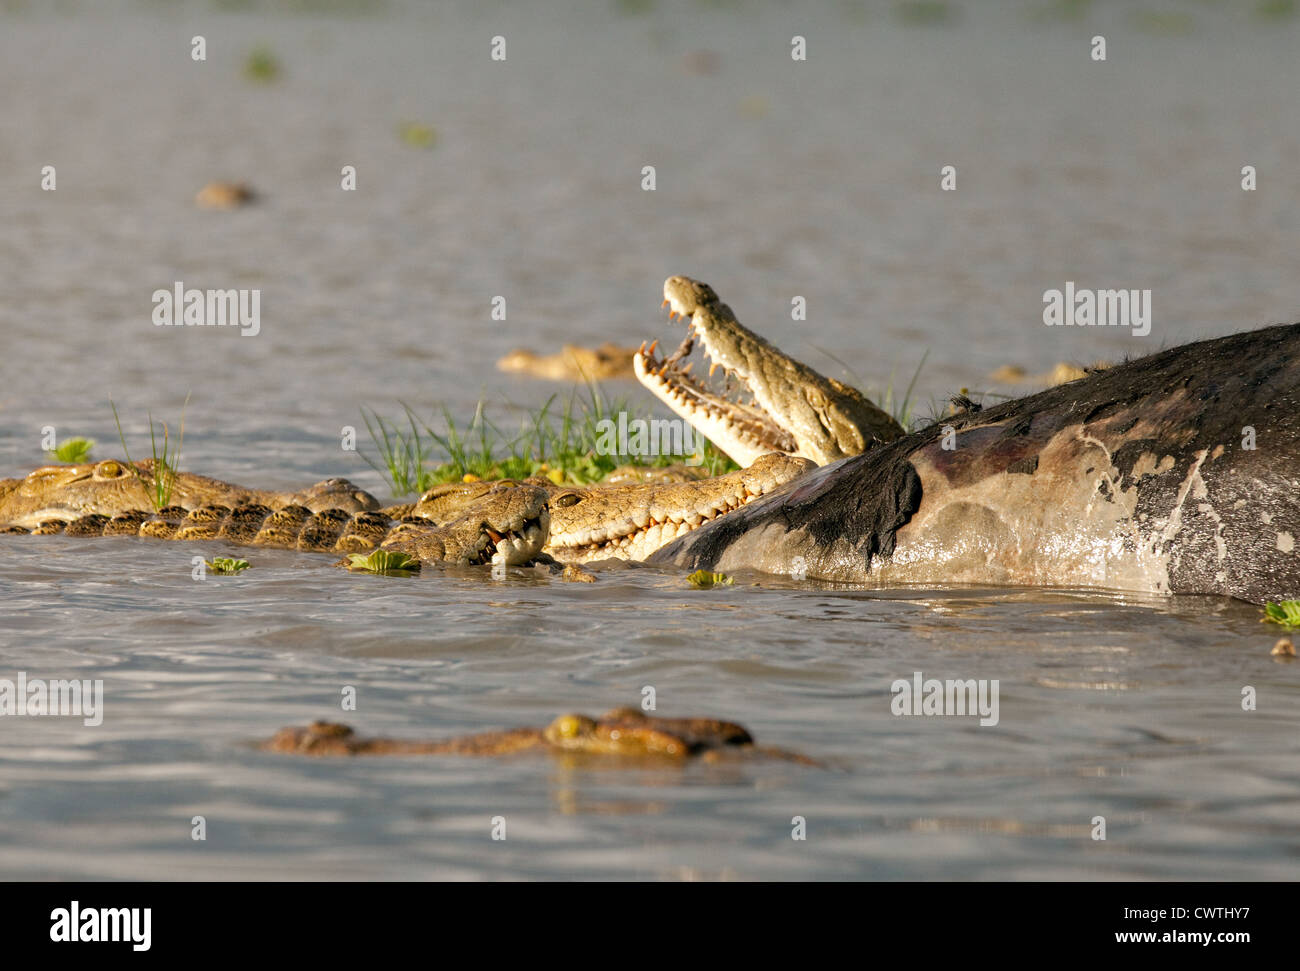 Nile crocodiles feeding on the carcass of an african buffalo, Lake Manze, Selous Tanzania Africa - Stock Image